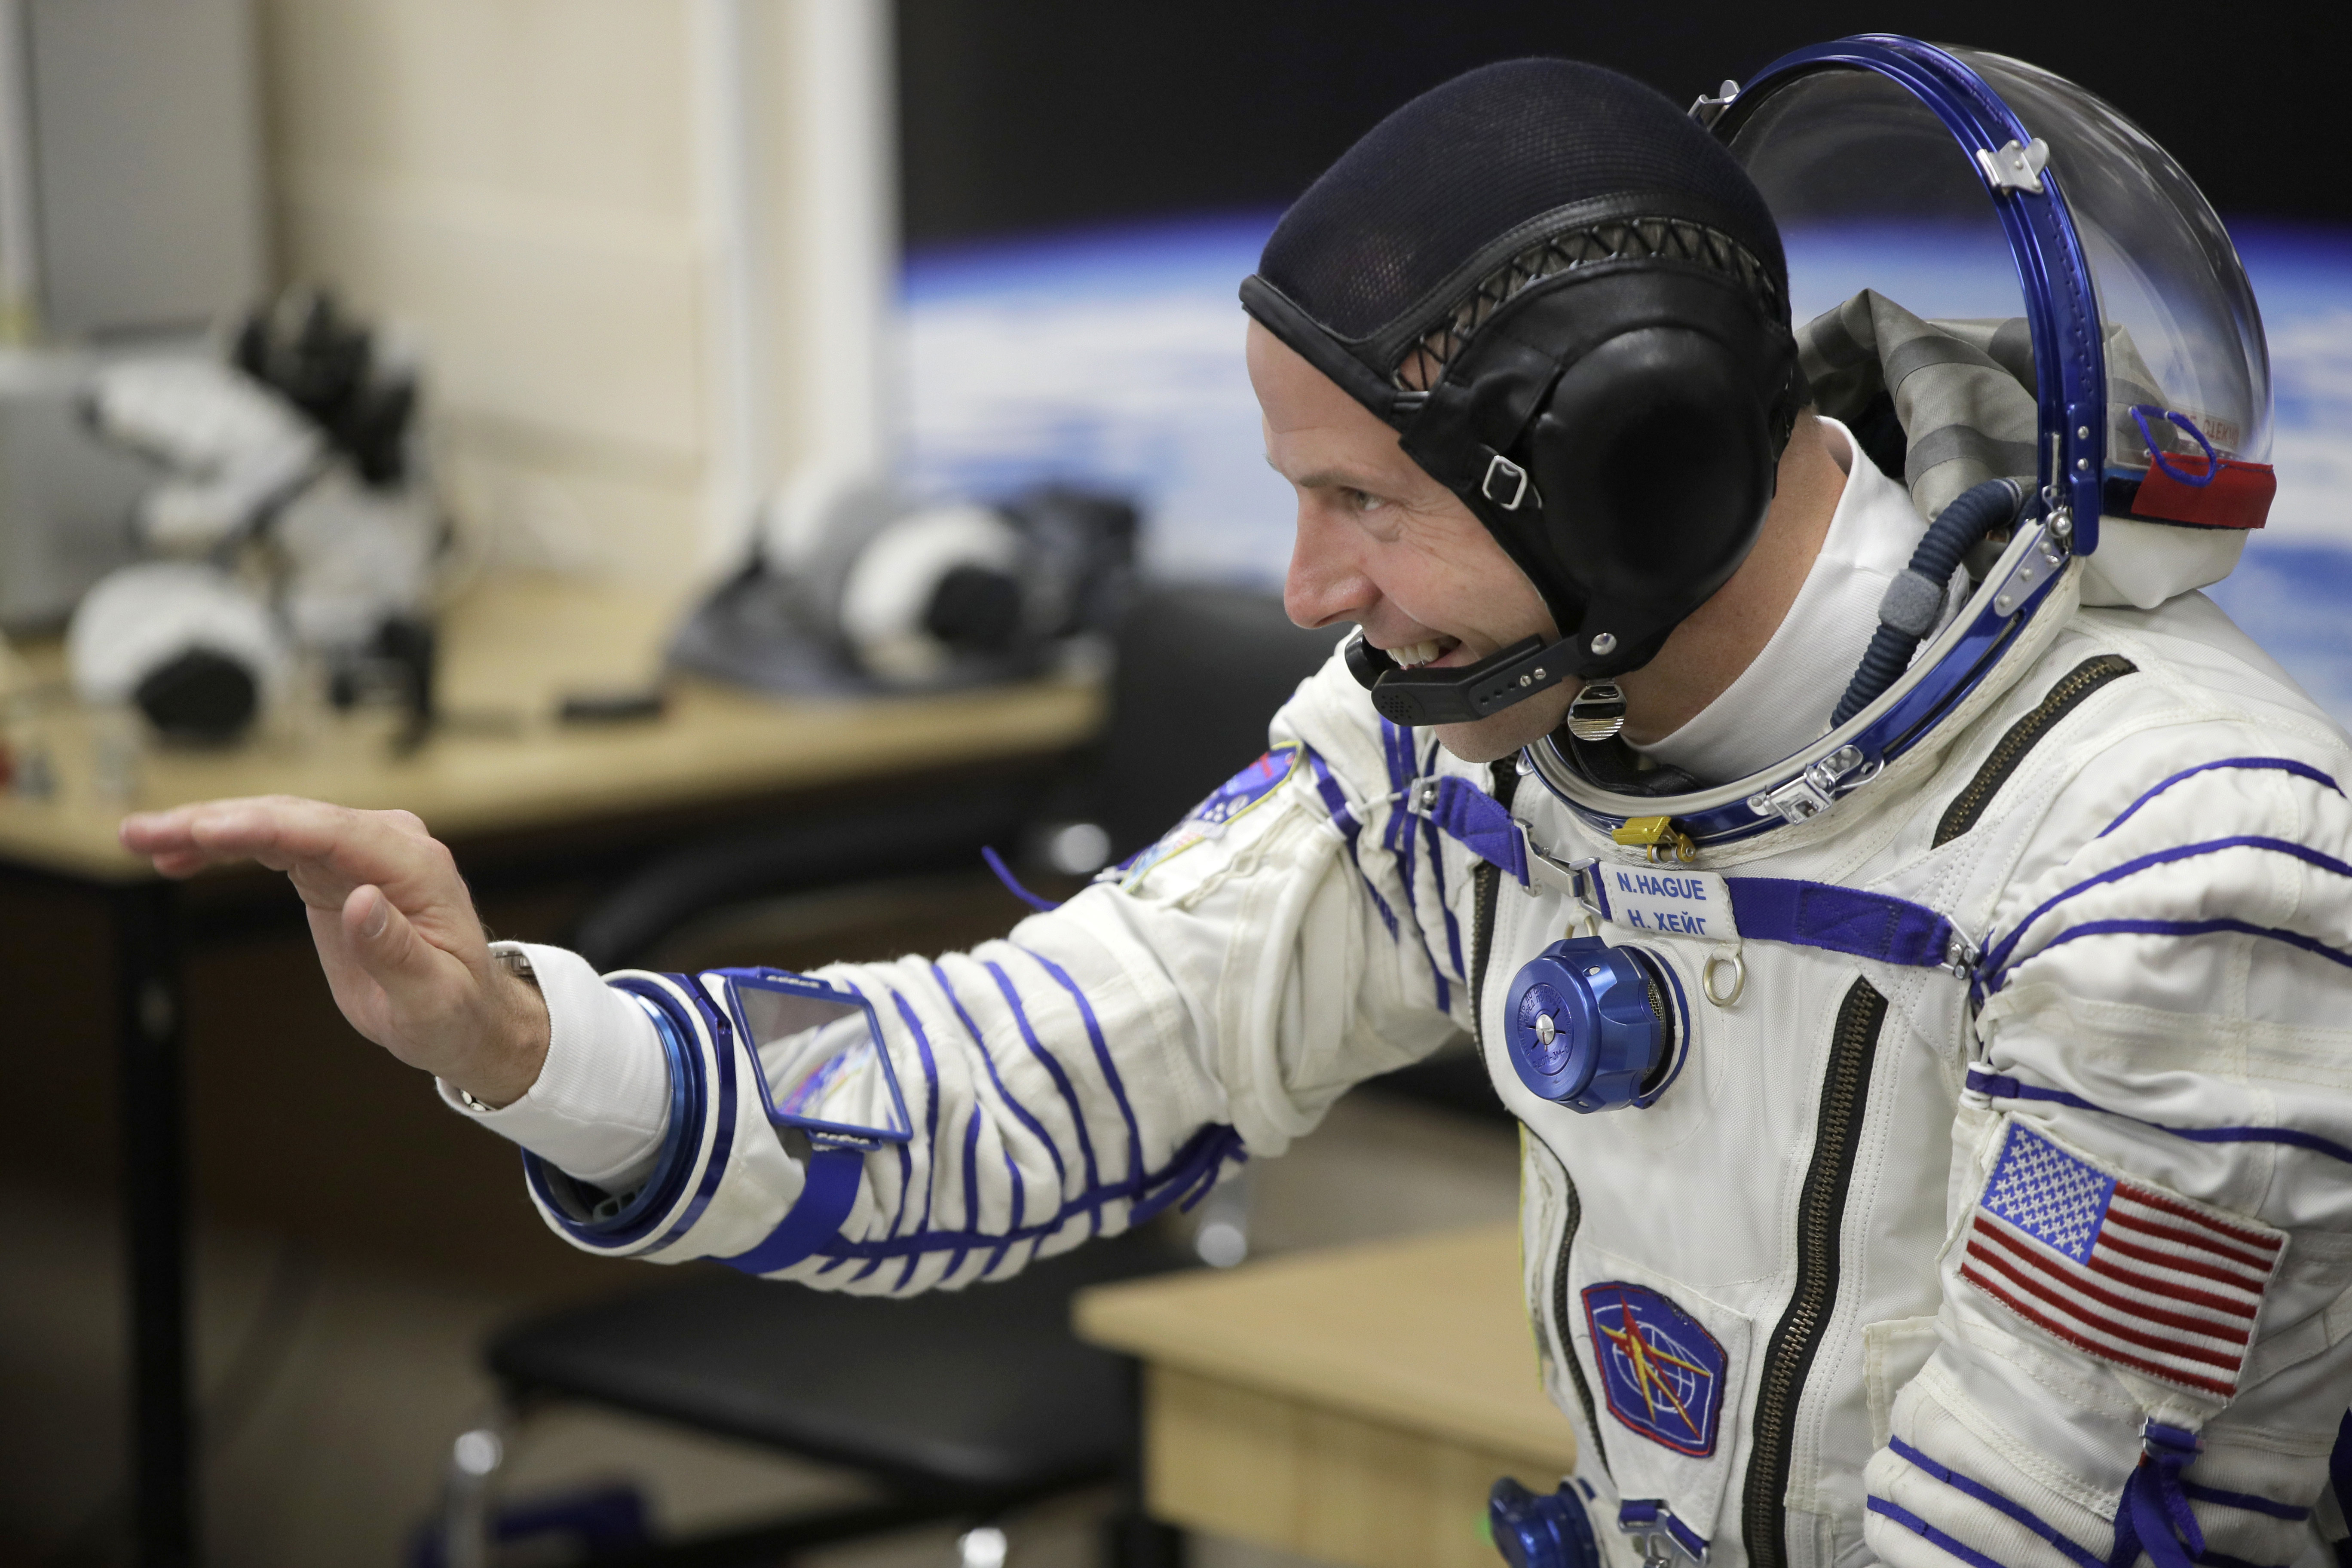 After An Emergency Landing, This Air Force Academy-Alum Astronaut Will Soon Blast Off Again